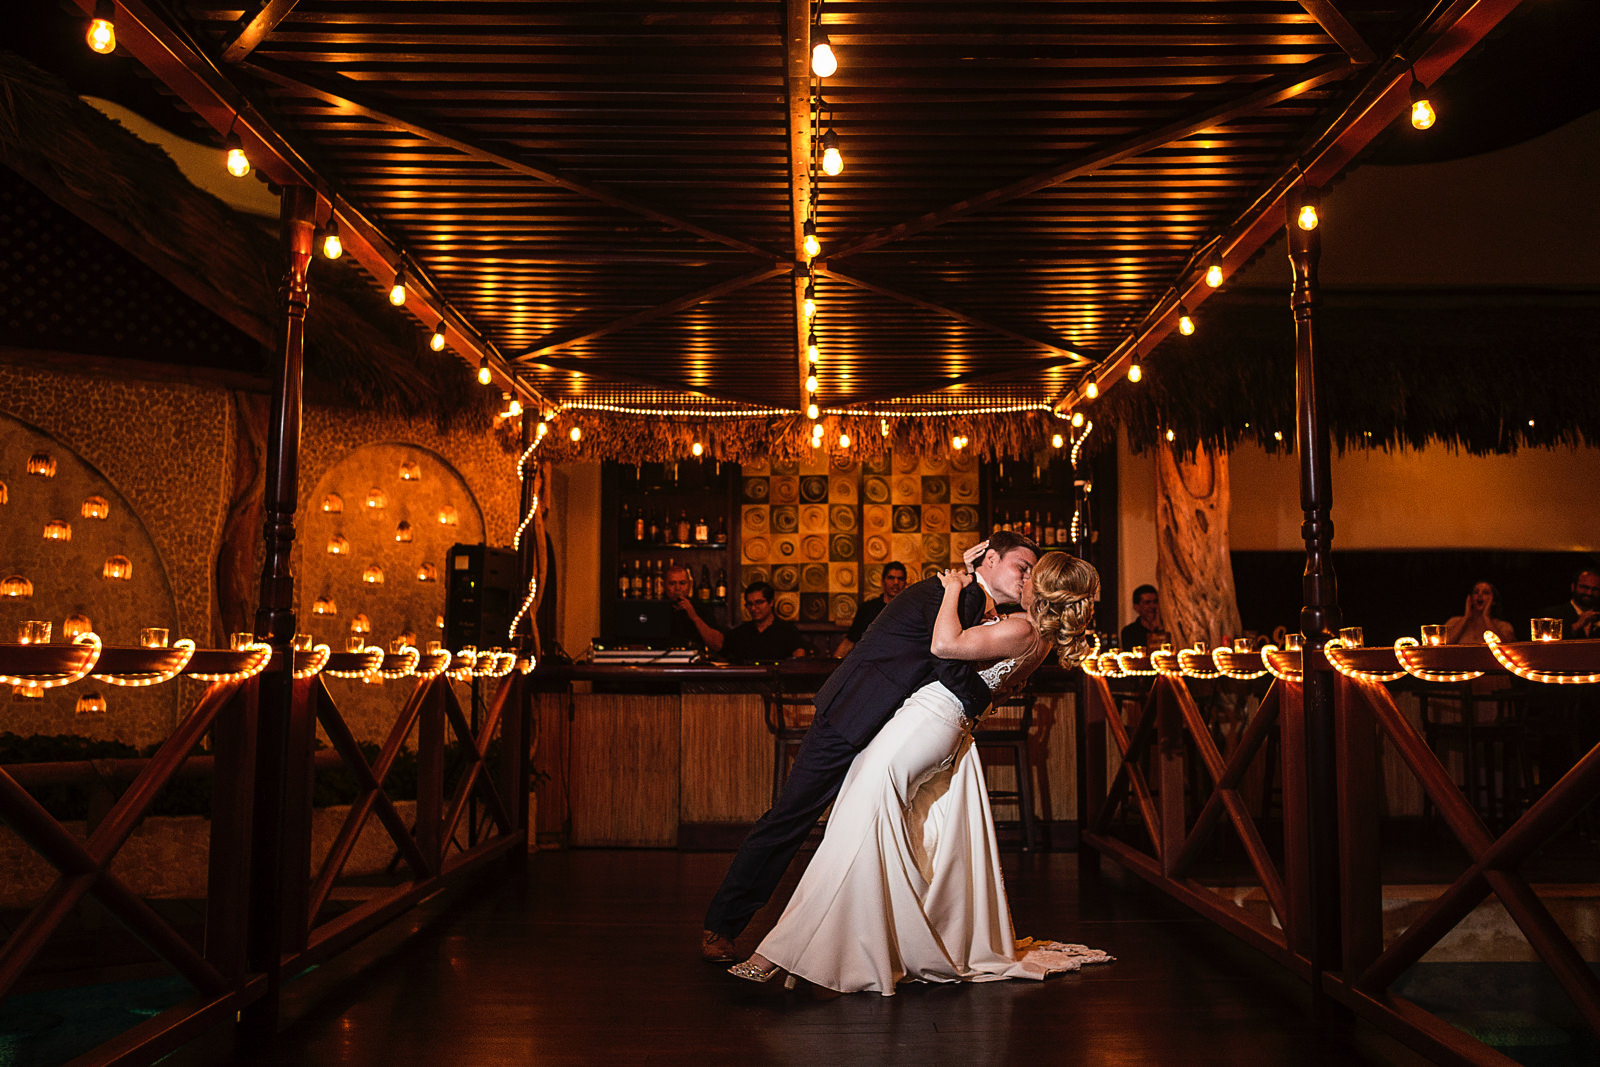 vallarta-wedding-first-dance-lights-fun-loving-hotel-playa-fiesta.jpg